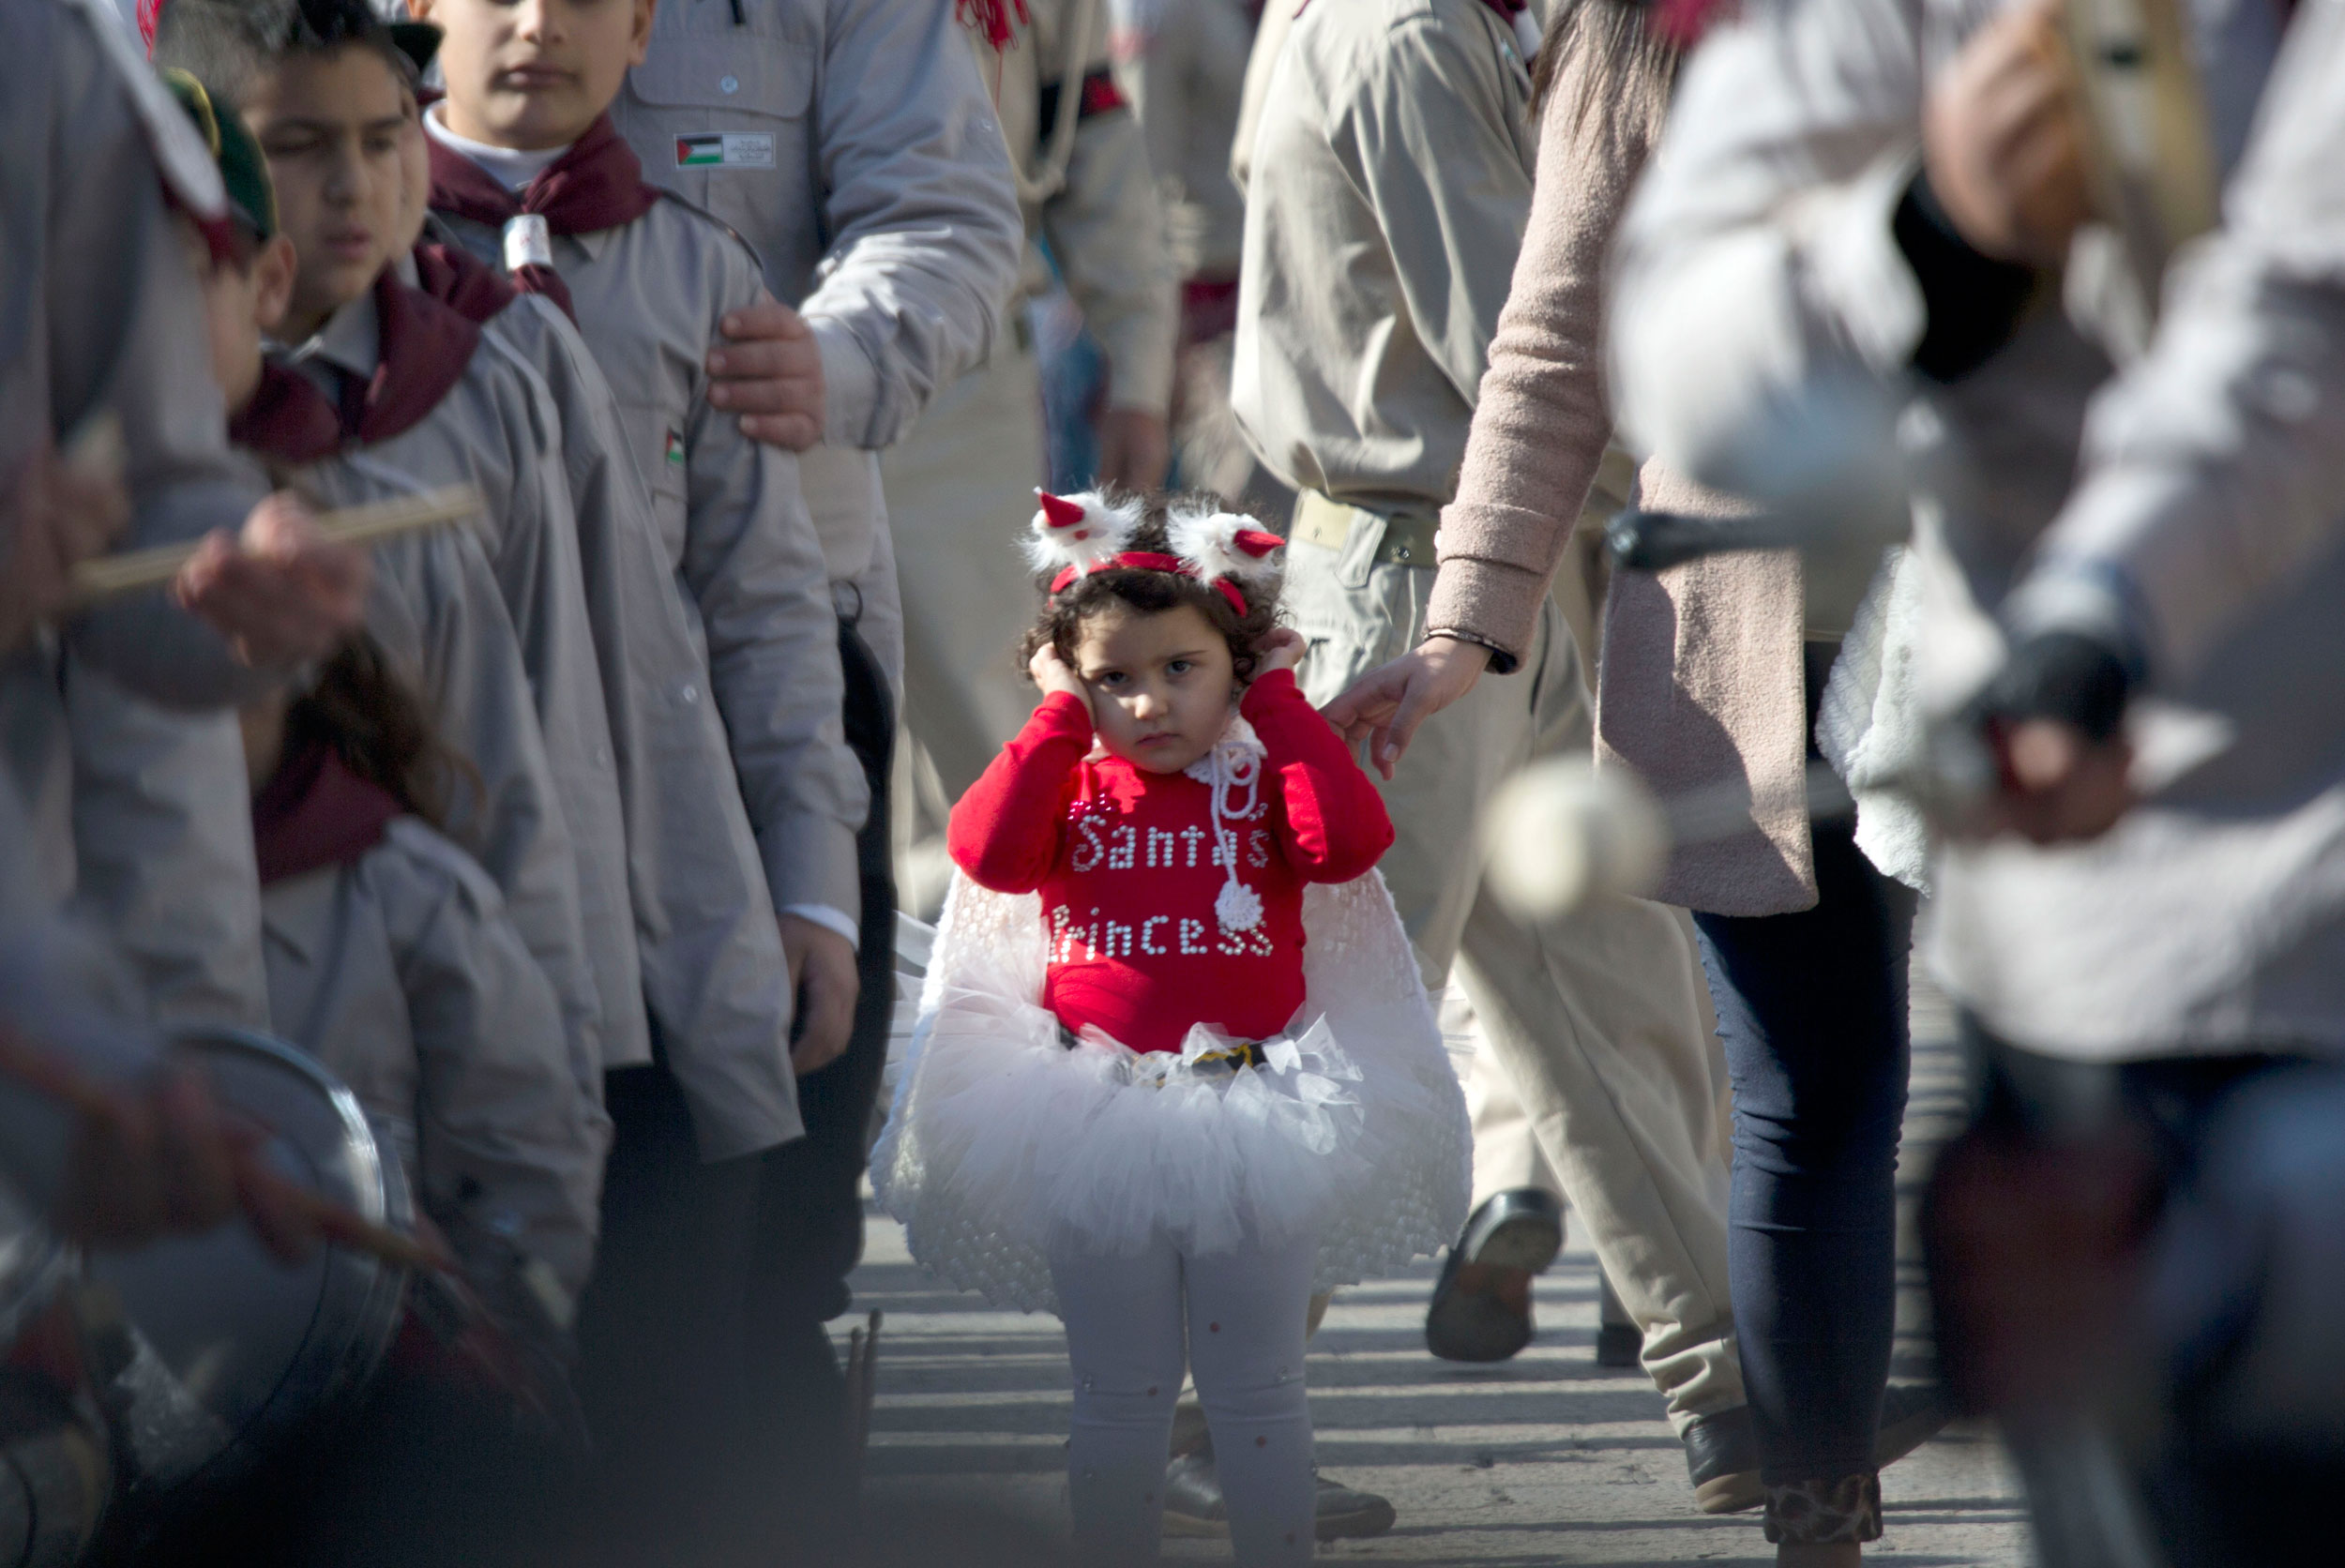 A Palestinian girl dressed in a costume joins a Christmas Eve celebration at Manger Square outside the Church of the Nativity, built atop the site where Christians believe Jesus was born, in the West Bank town of Bethlehem on Dec. 24, 2014.